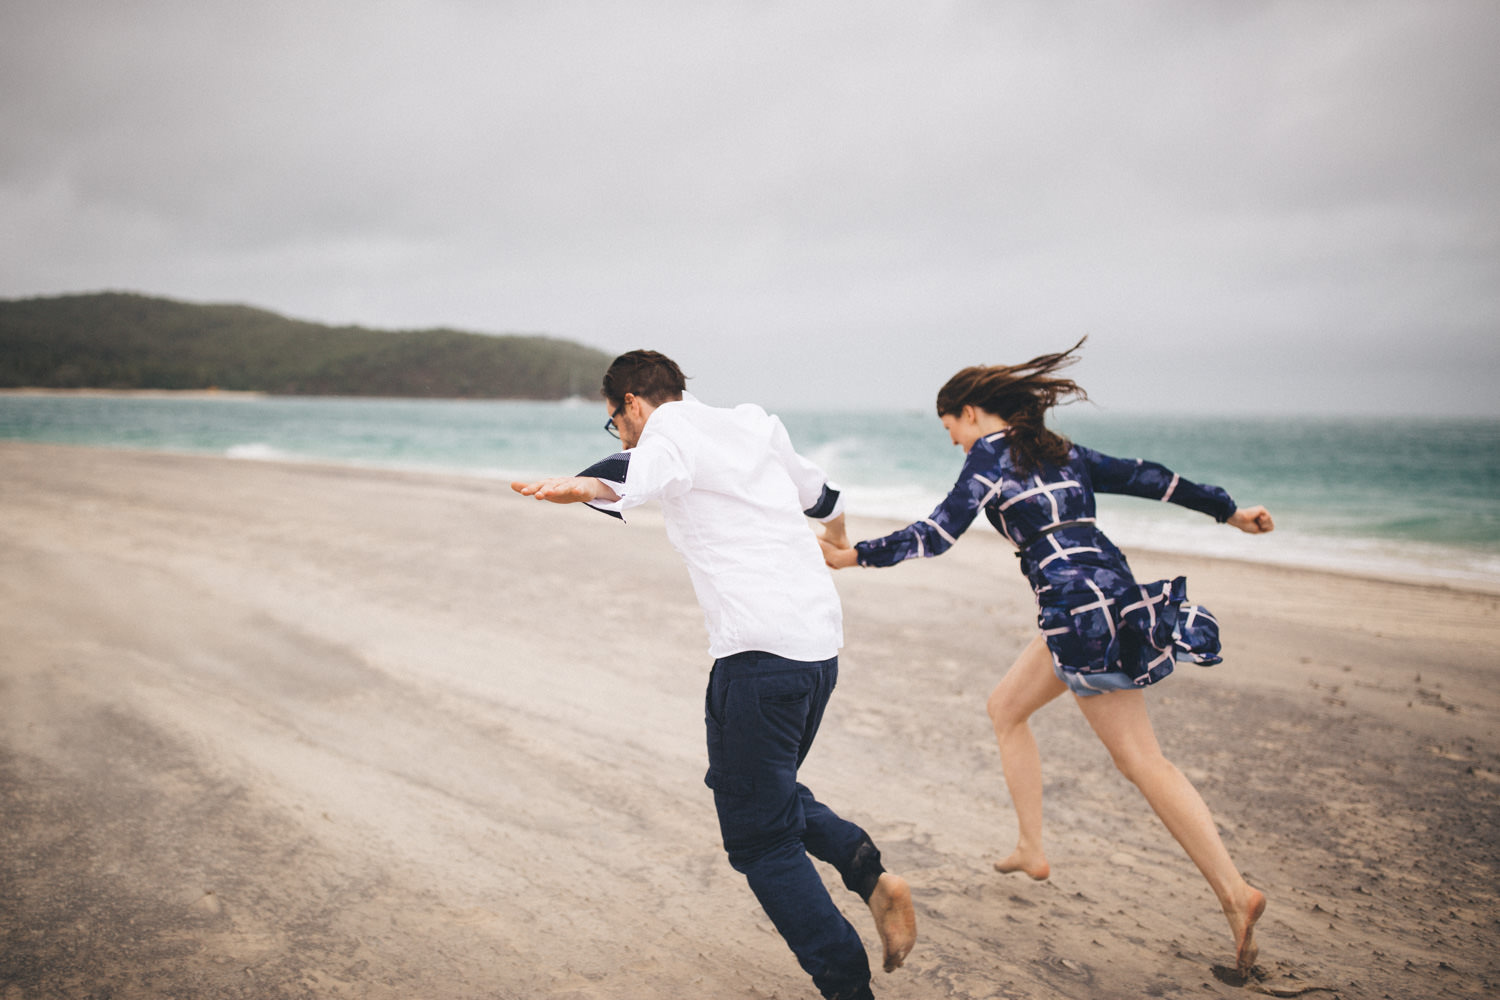 Rob-Kaity-Island-Engagement-Session-0038.jpg